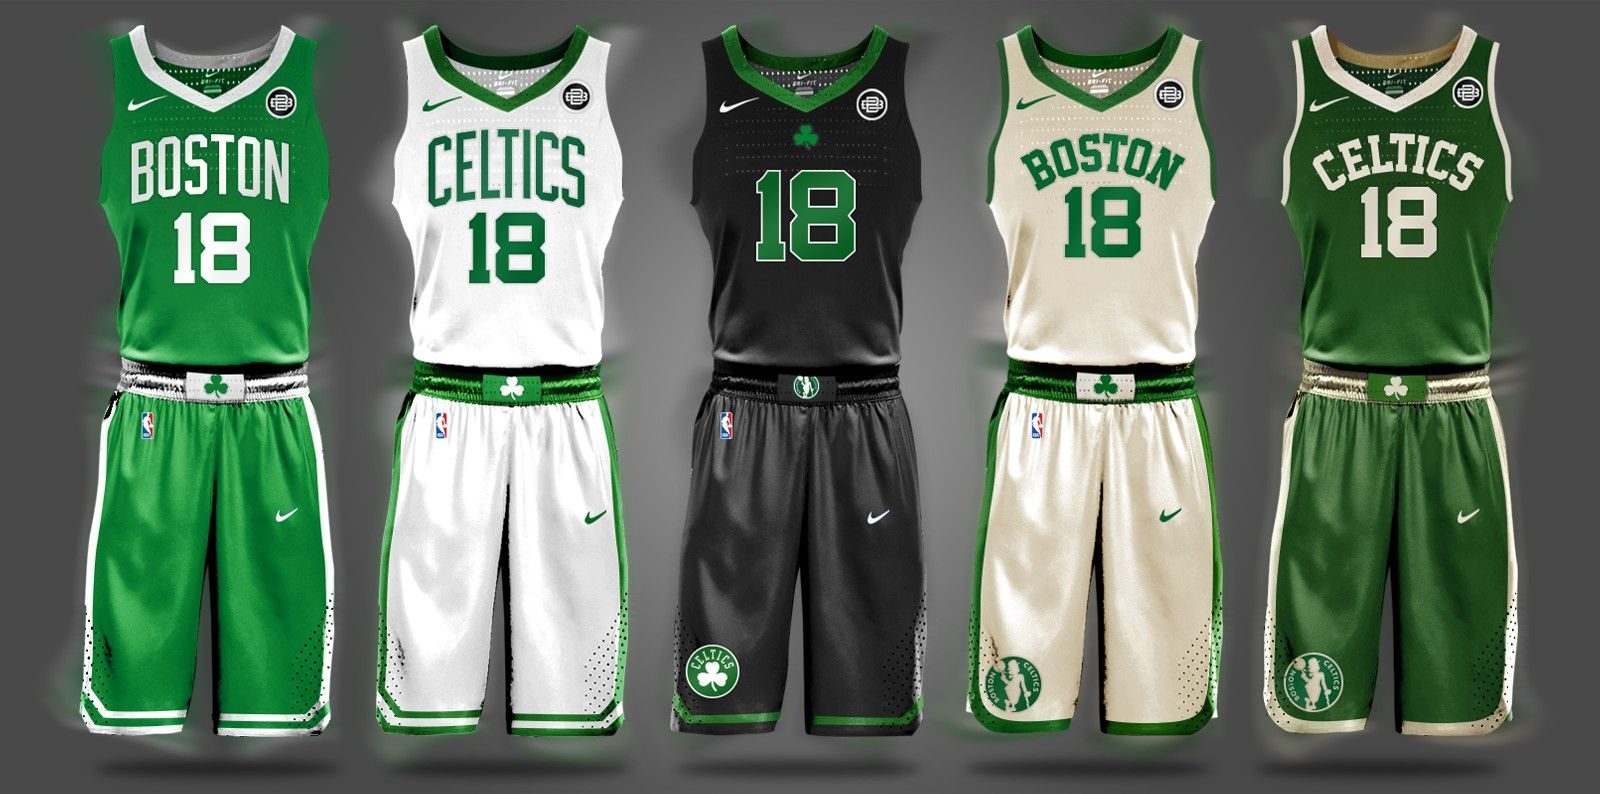 f5a1ffec2 Boston Celtics jerseys